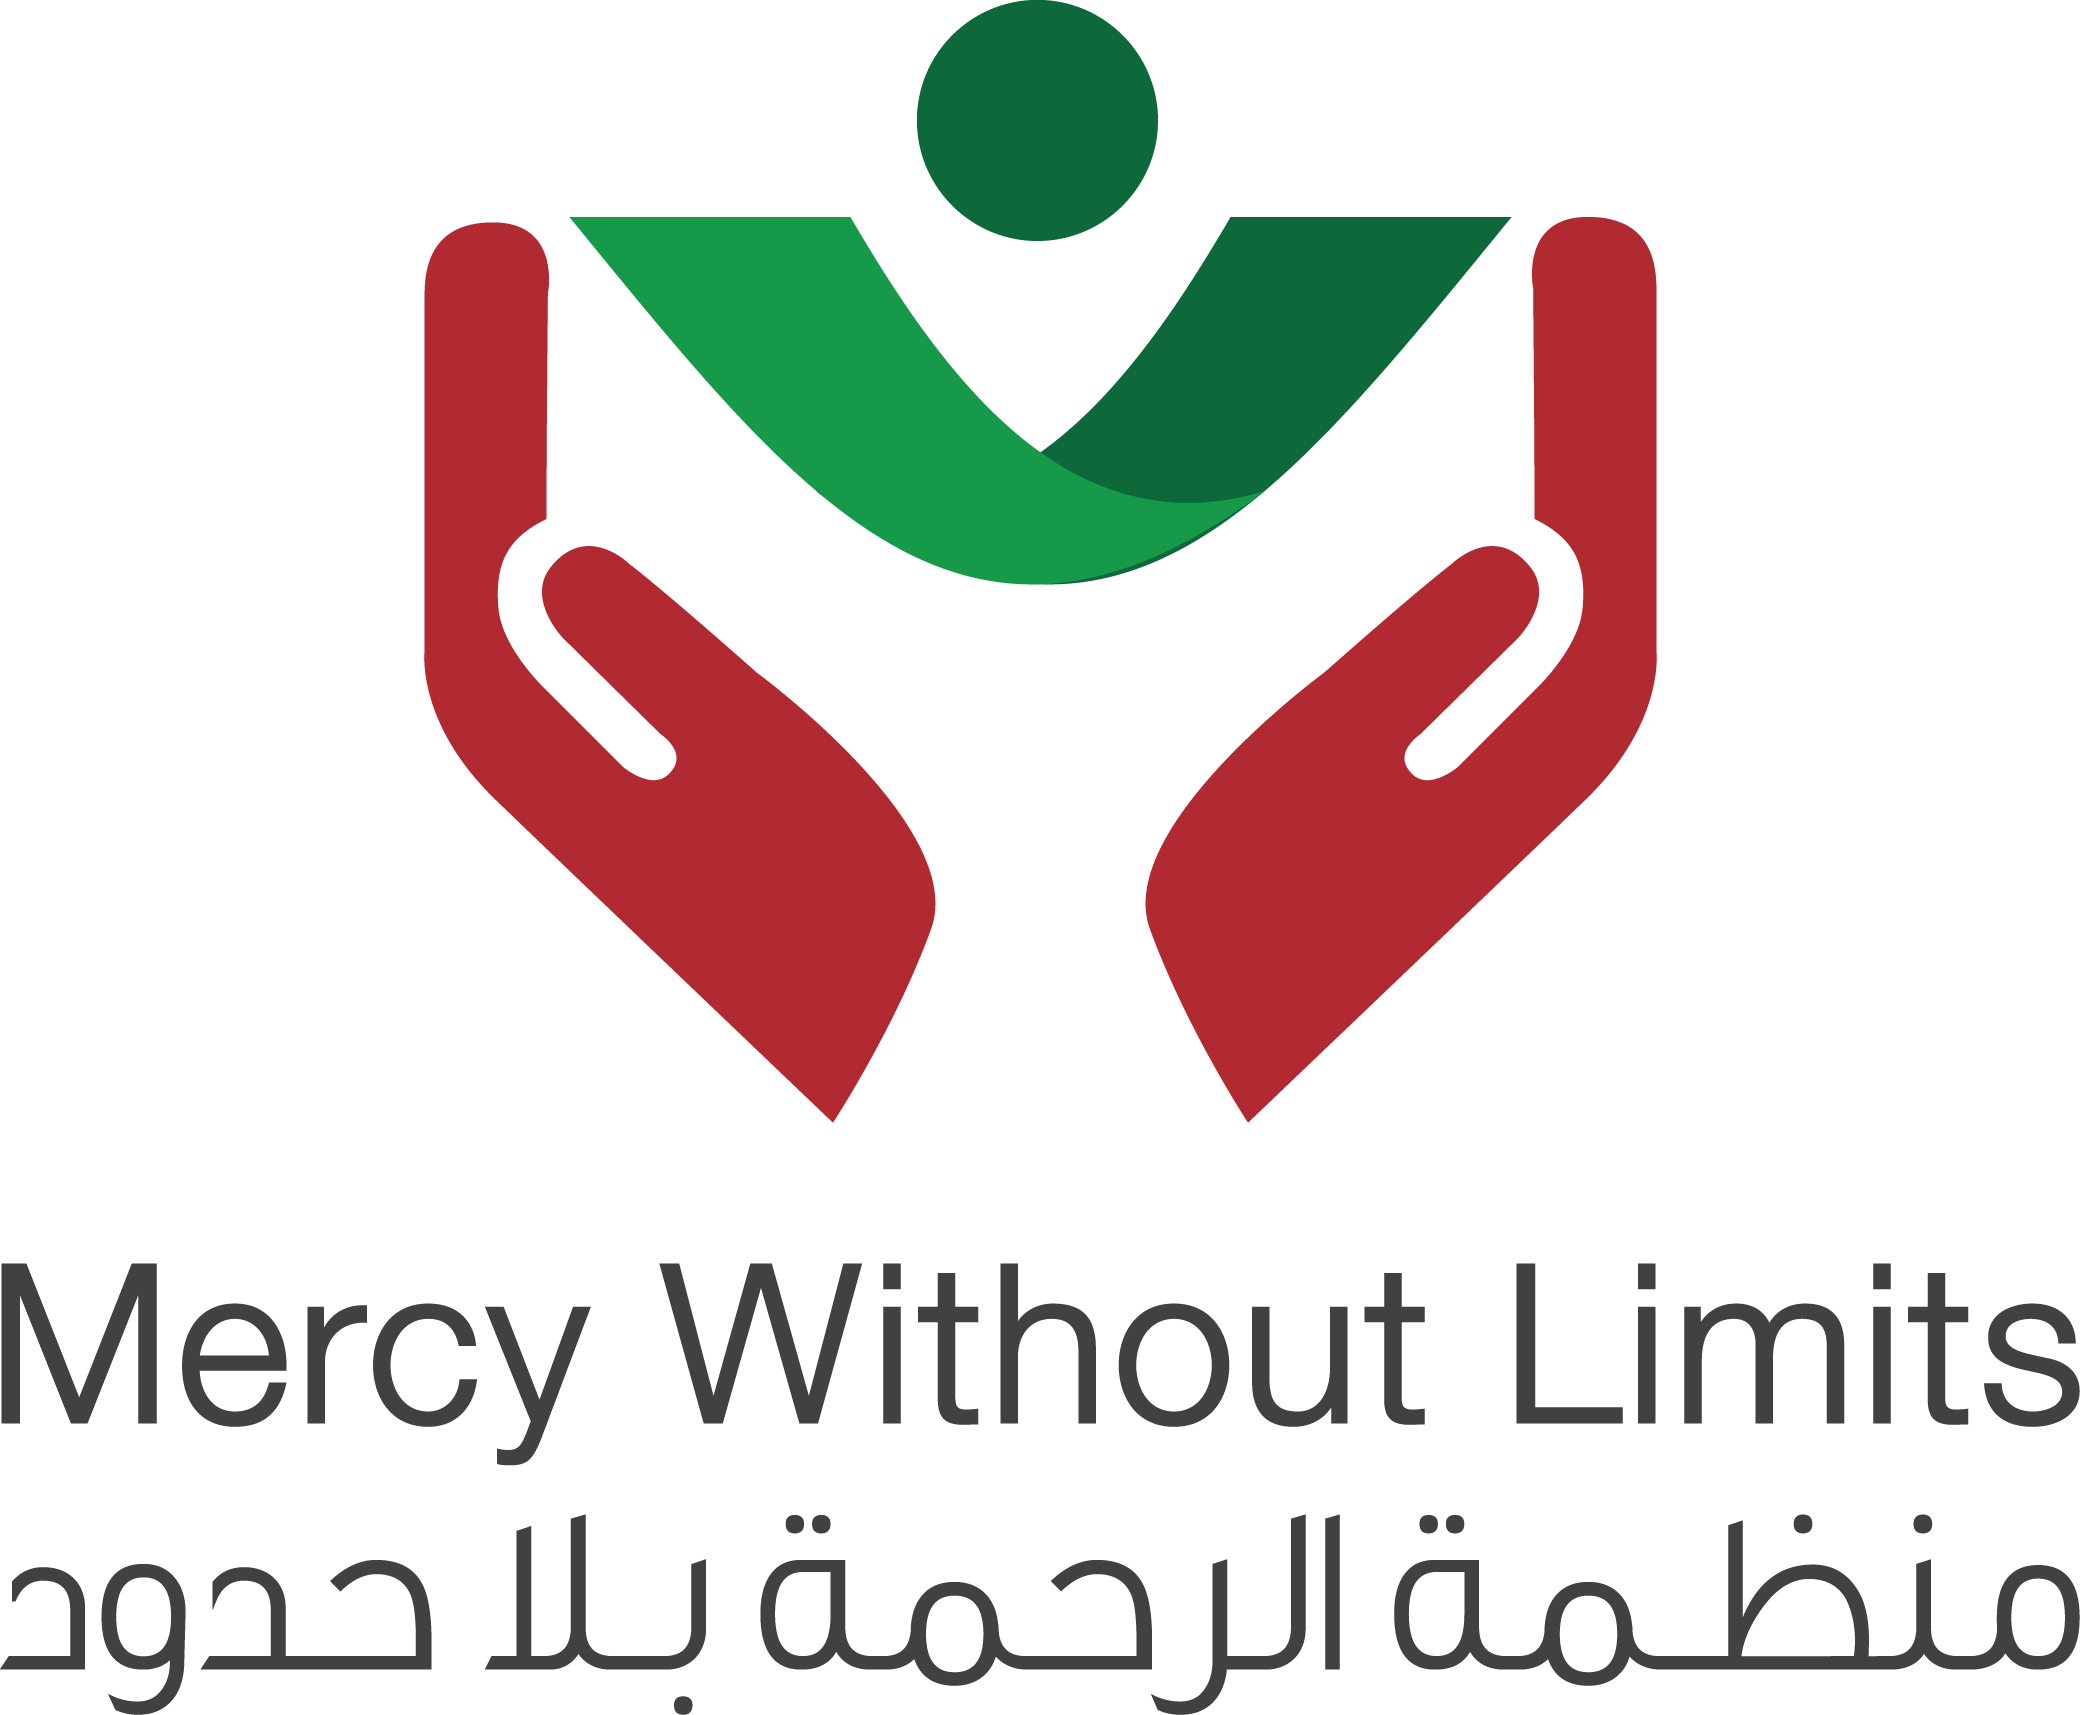 Mercy Without Limits